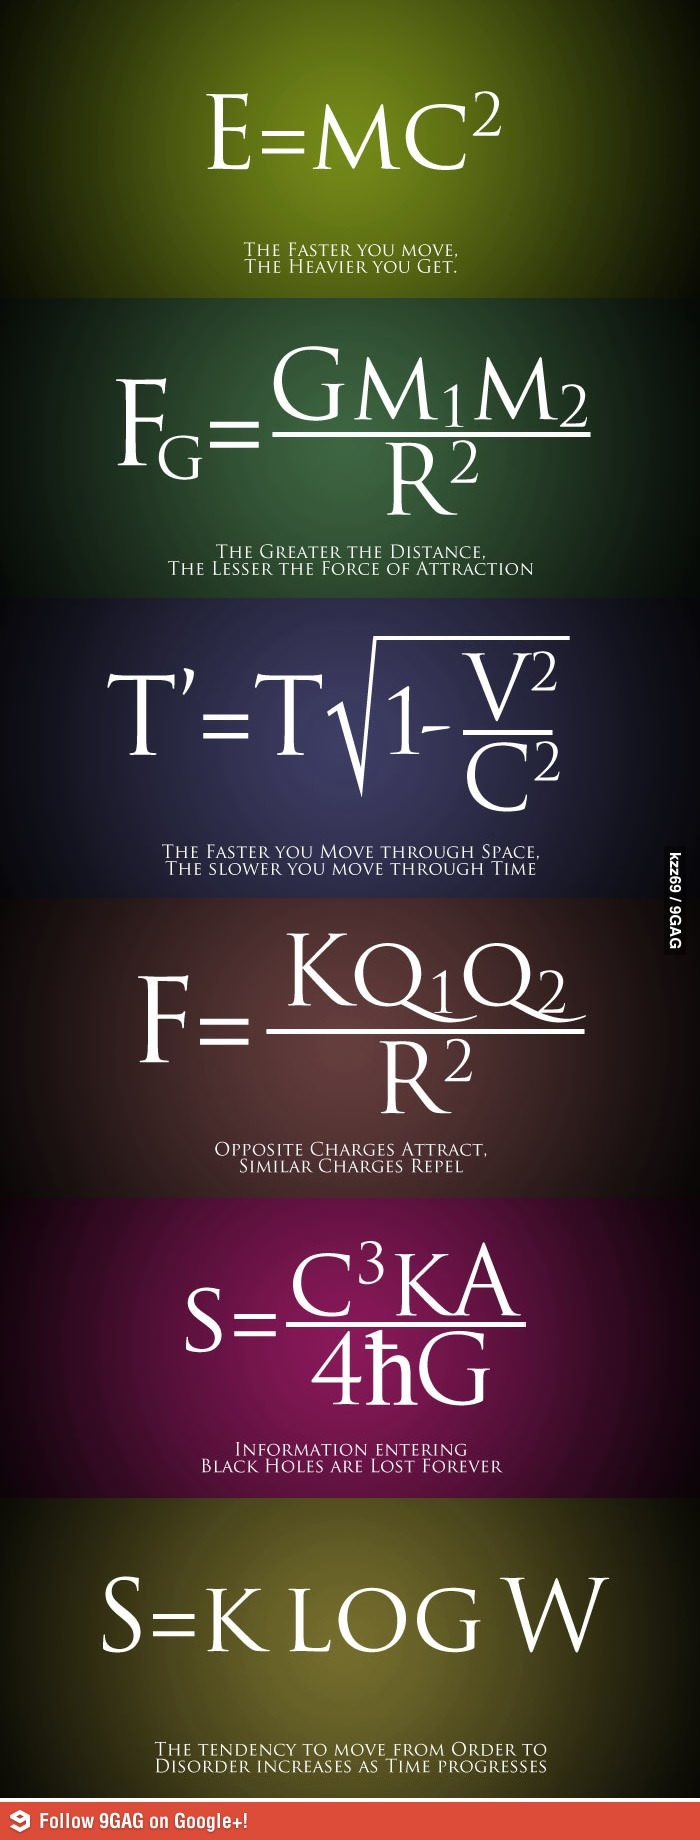 Not everyone actually understands what these mean! lol Physics might have been useful after all